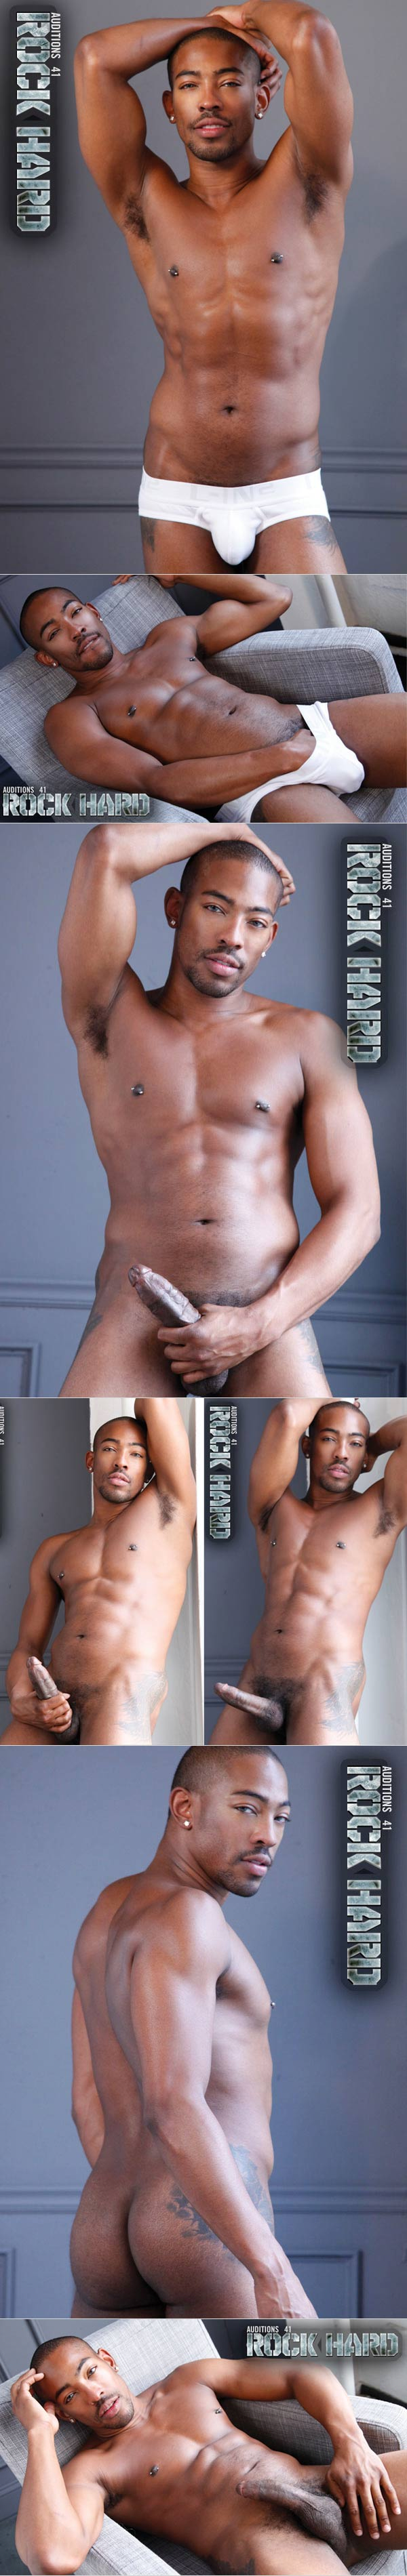 Rock Hard (Colin Black & Chris Daniels) at LucasEntertainment.com